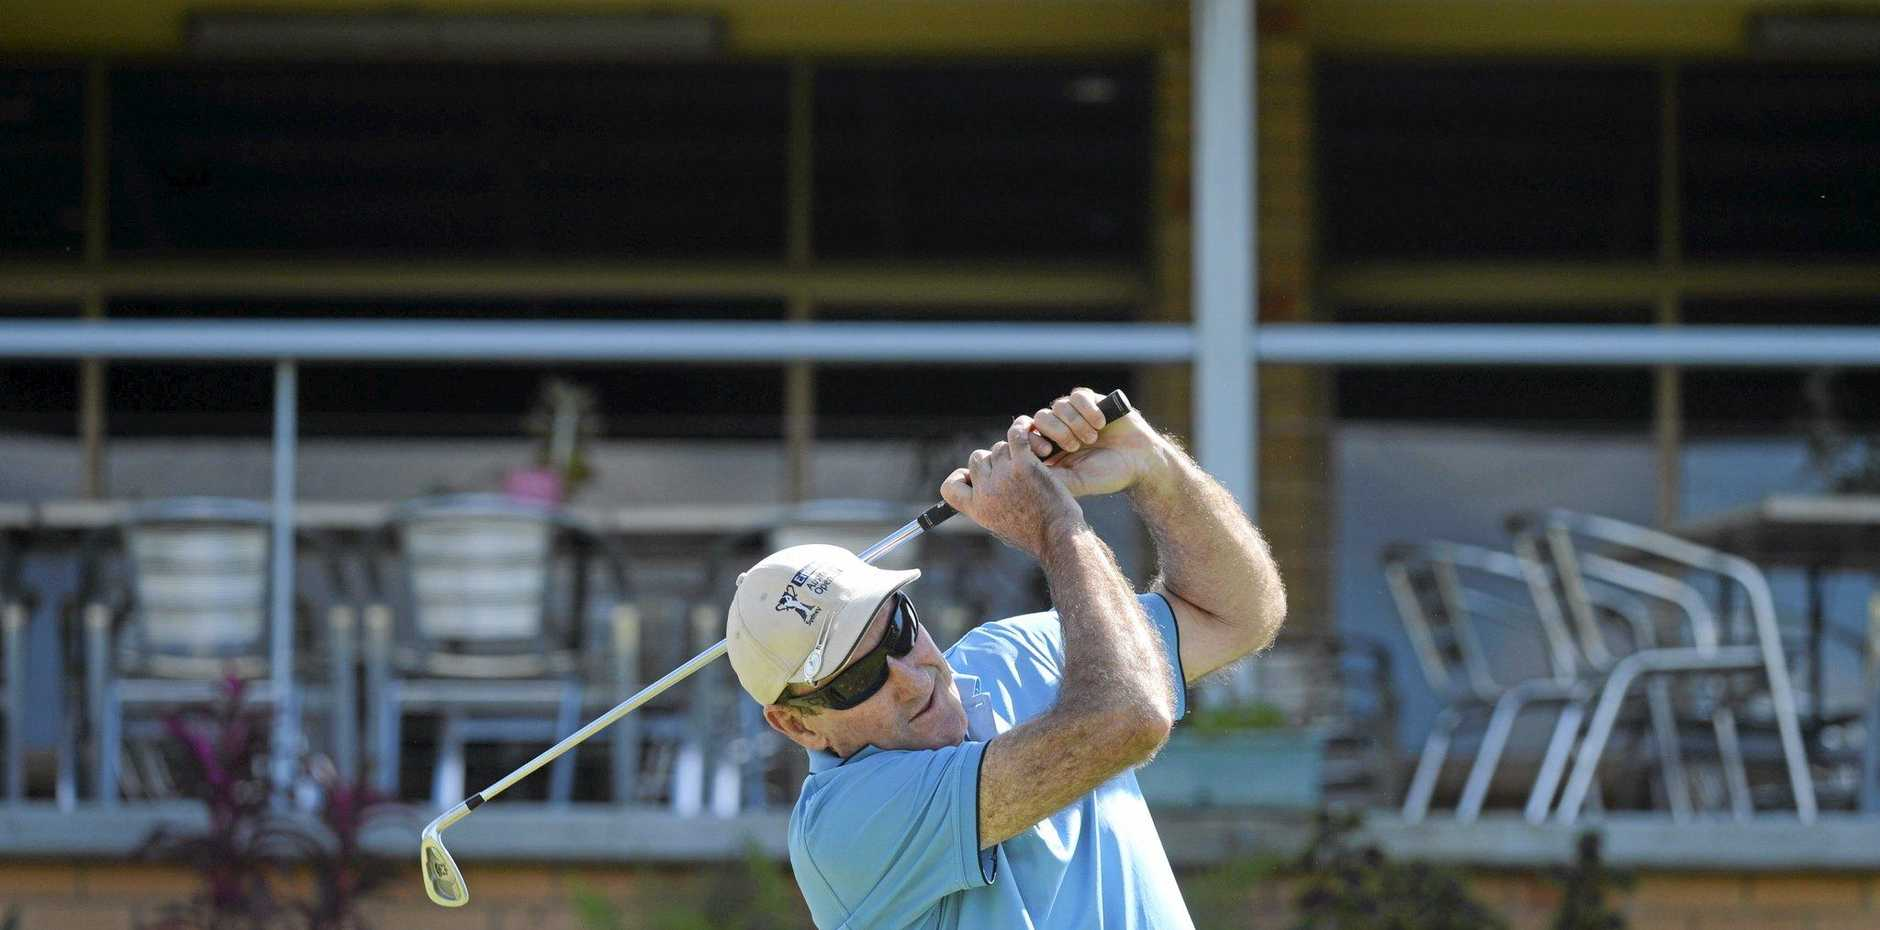 FOLLOW THROUGH: Jim O'Donohue shows off his picture perfect swing during a recent round of 18 holes at the Grafton District Golf Club.